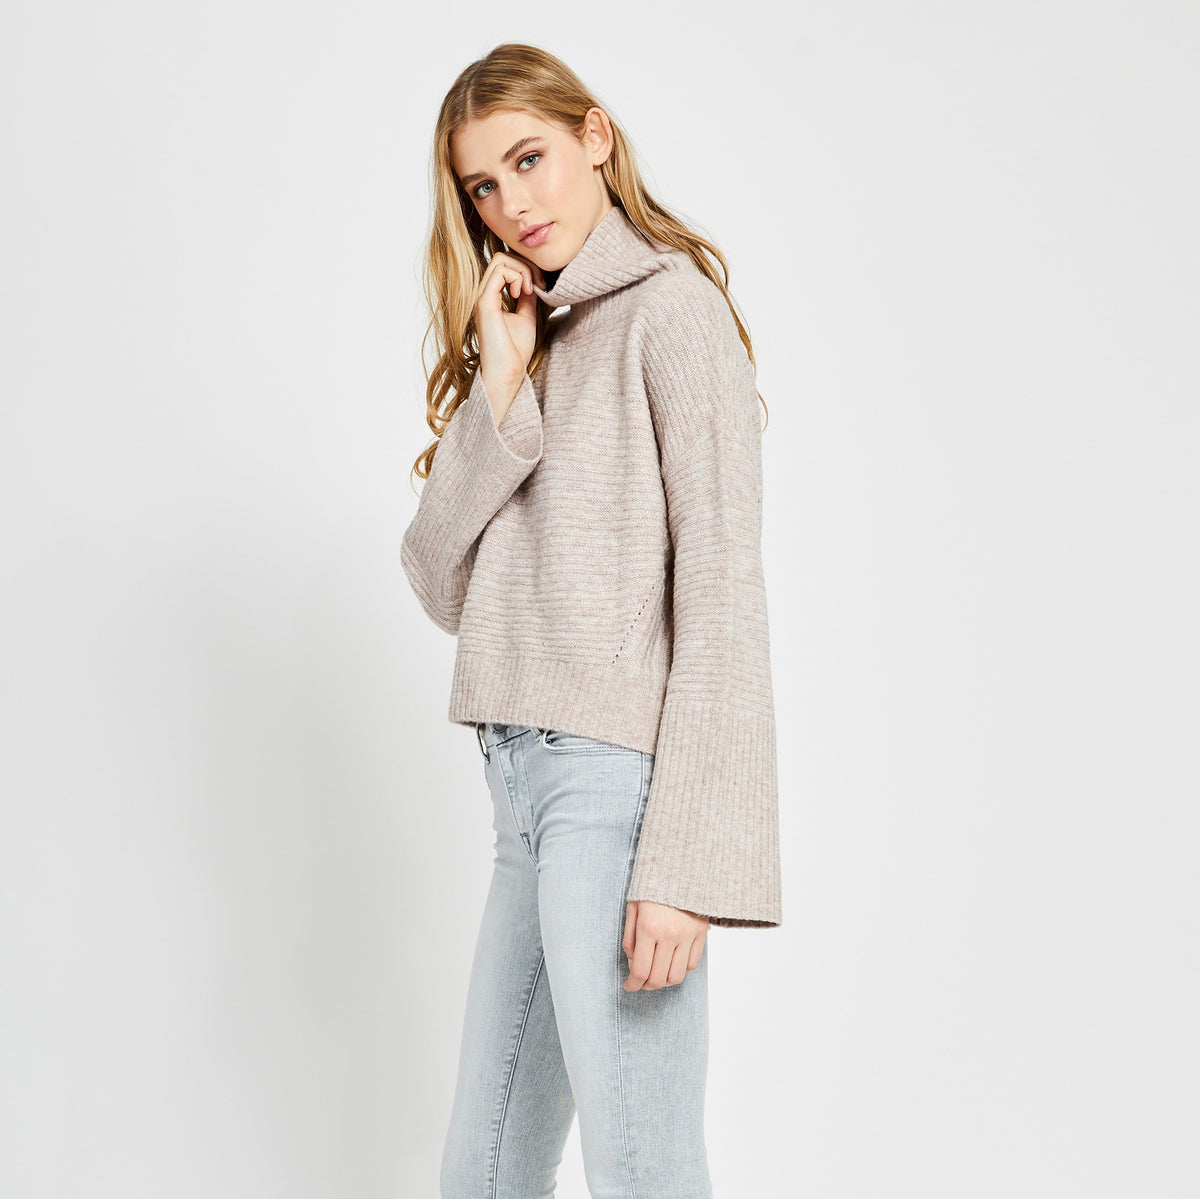 GENTLE FAWN Paris Sweater